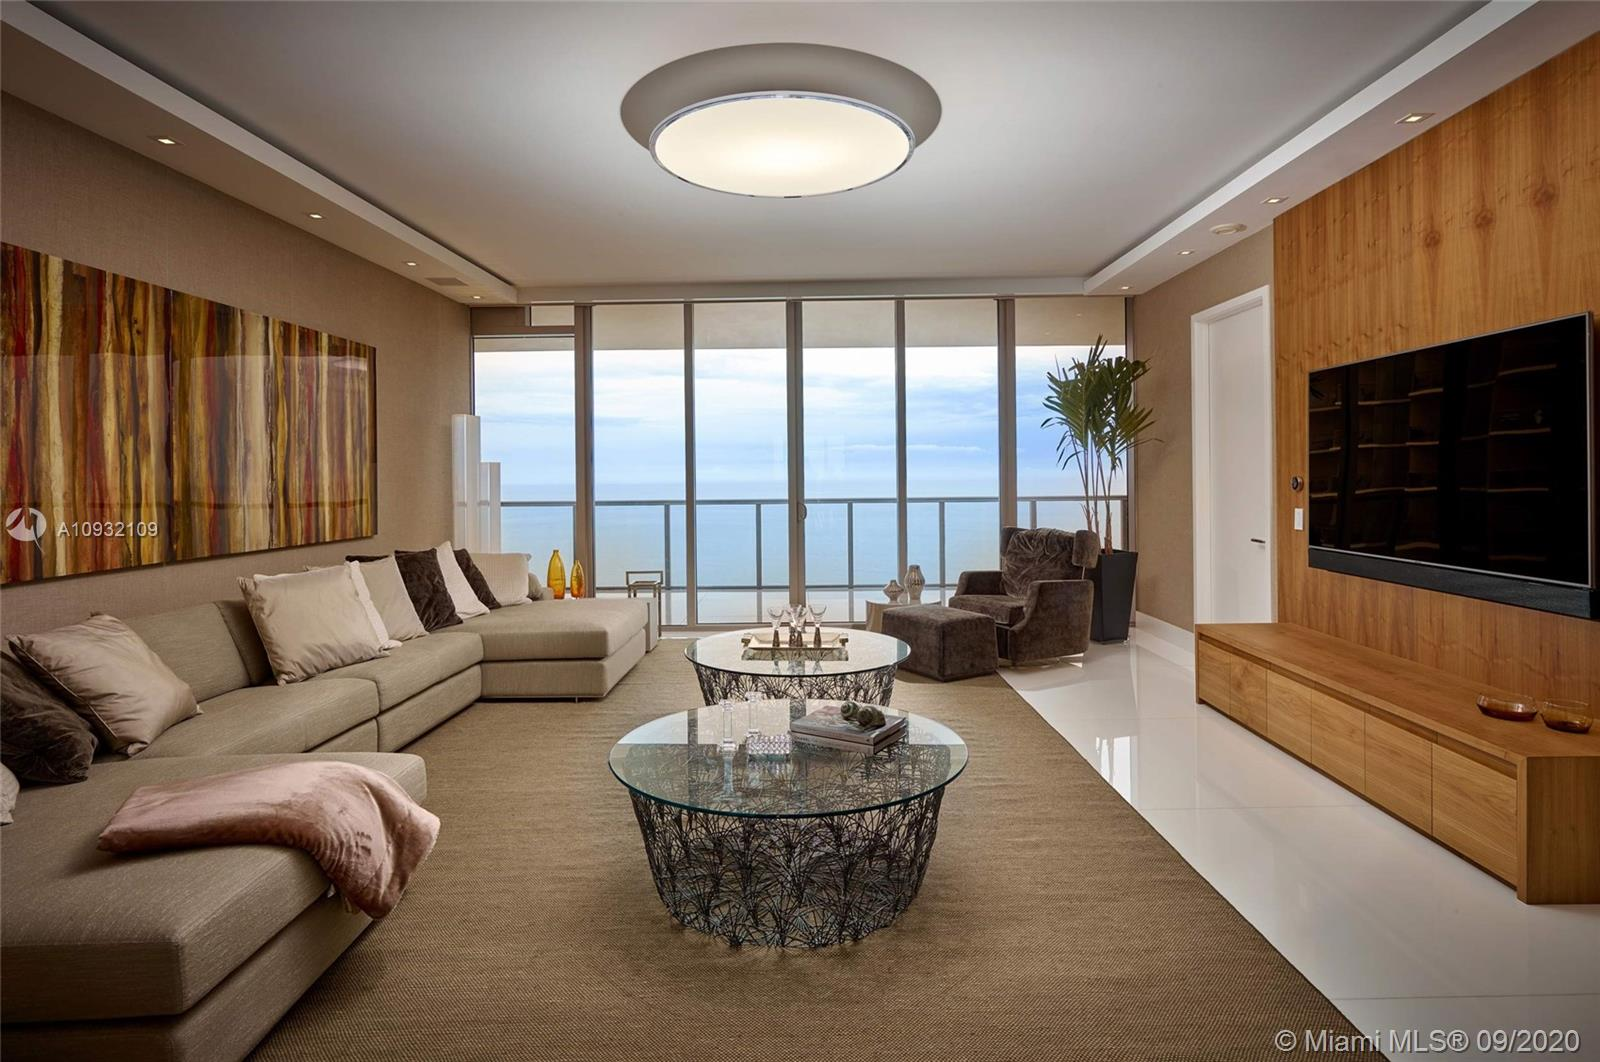 9701 Collins Ave, Unit #2302S Luxury Real Estate